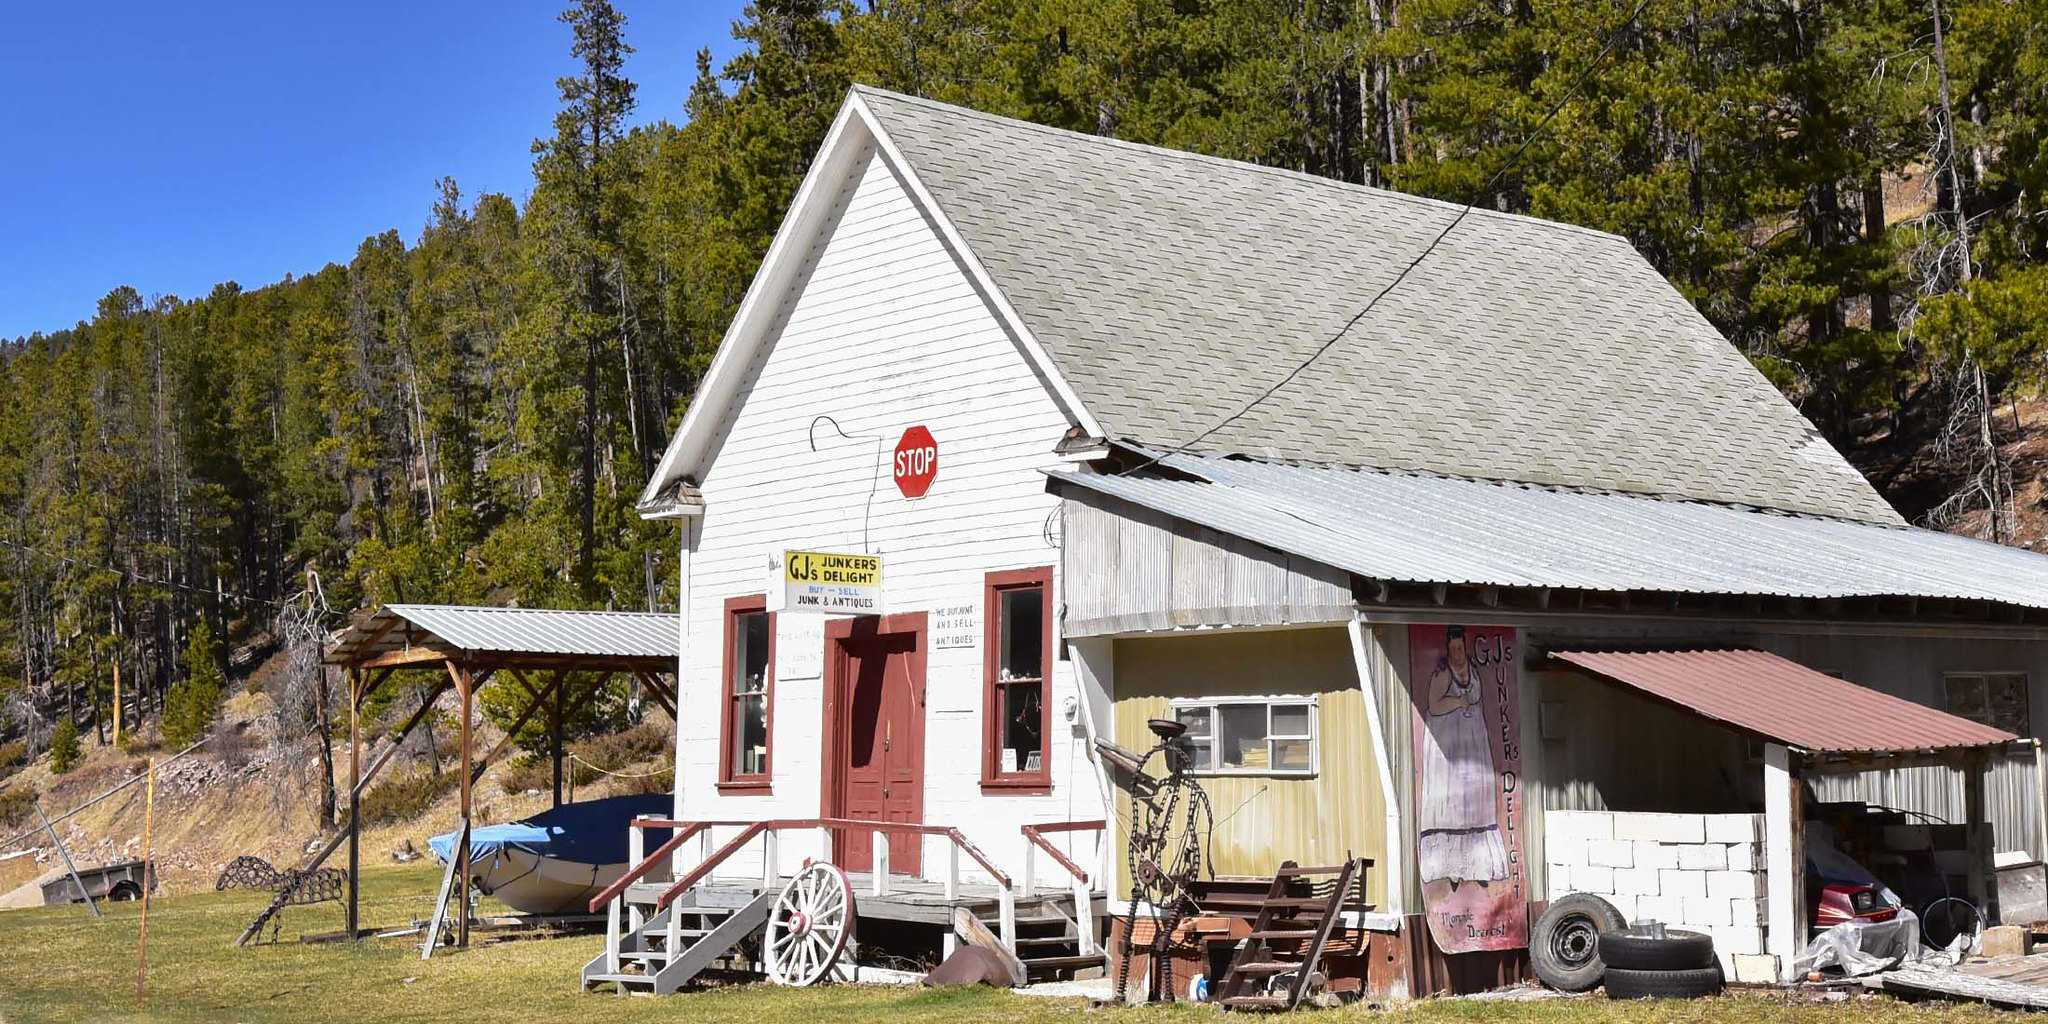 Find unique items and antiques at GJs Junker's Delight in Neihart, Montana in Cascade County.